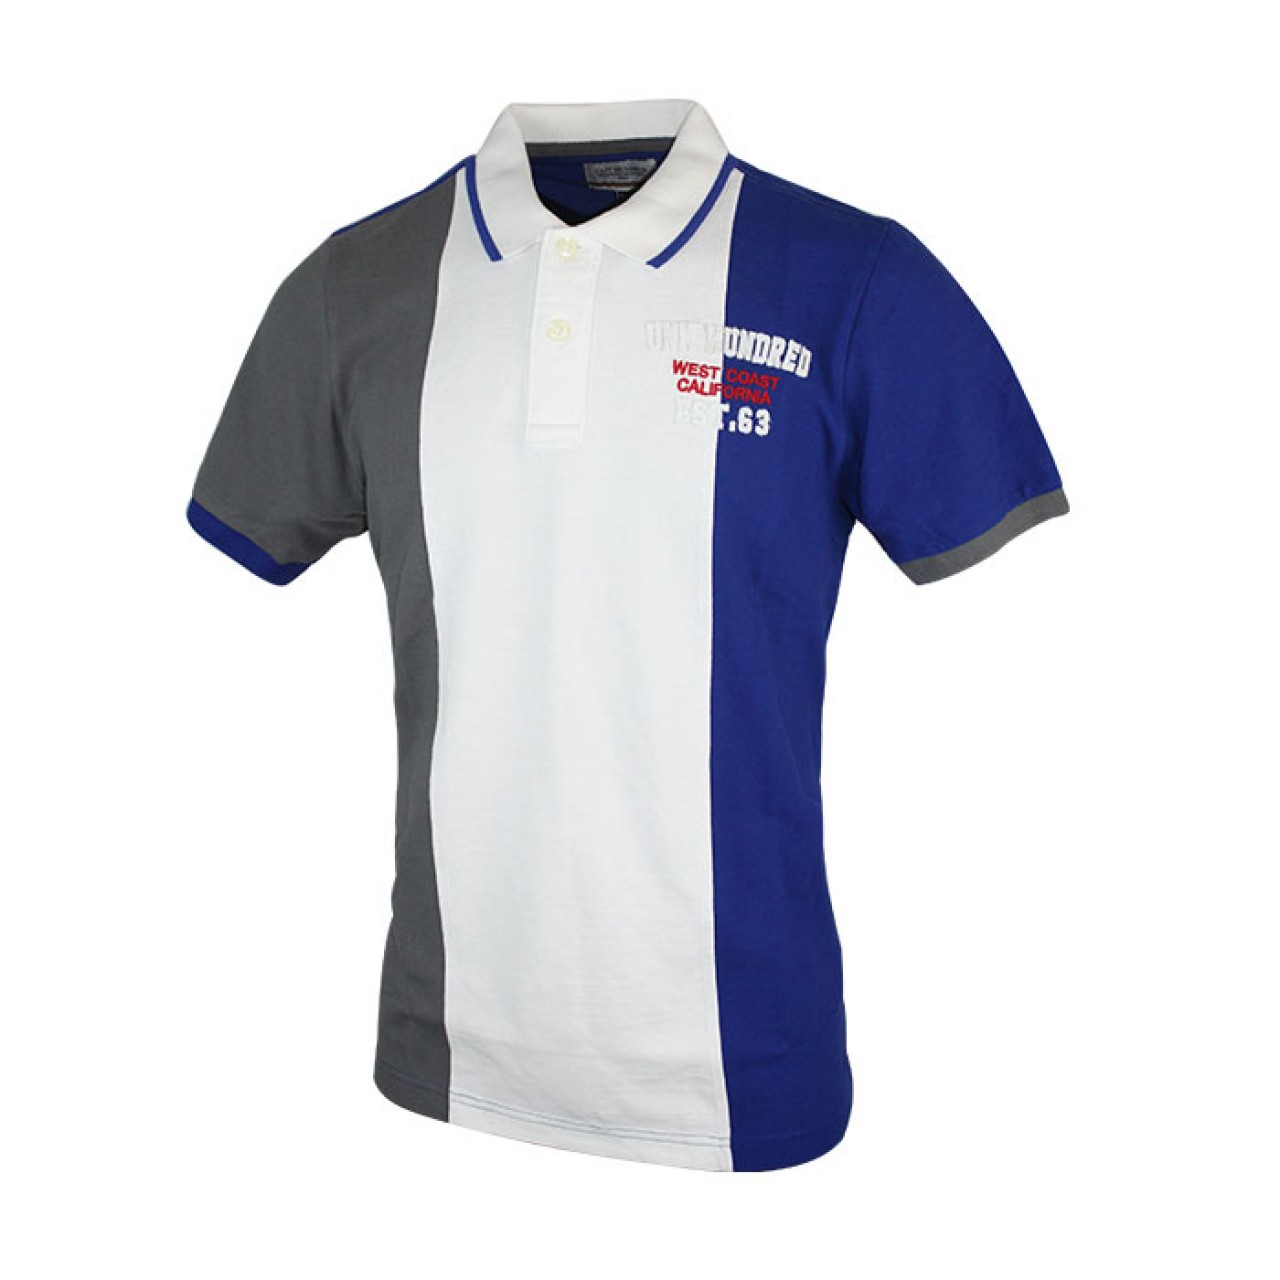 Men's Triple Color Collared Tees